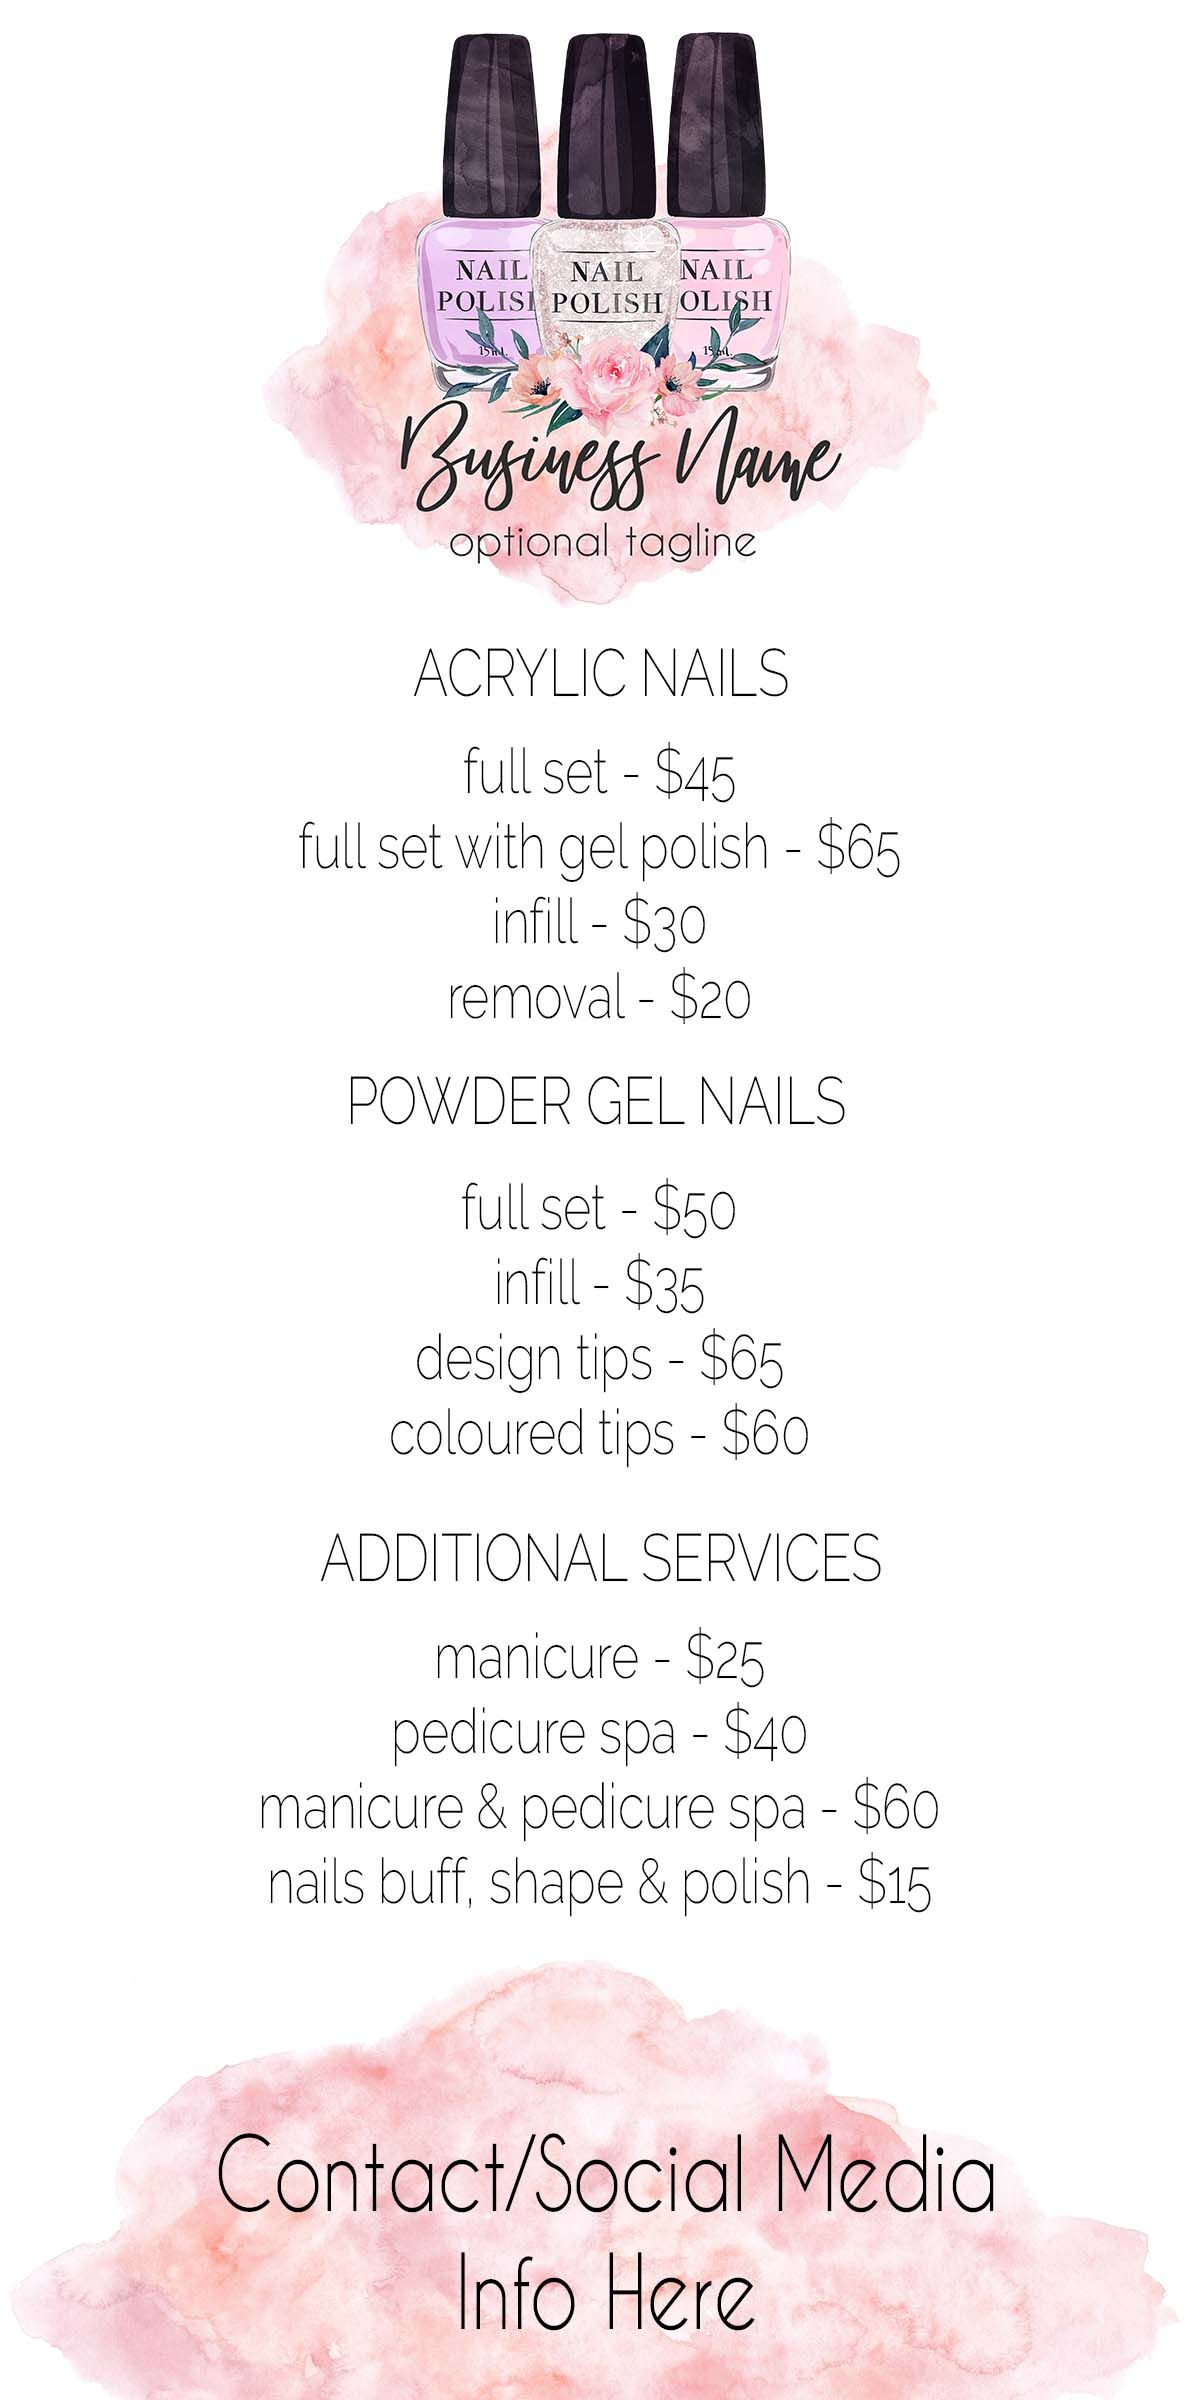 Nail Polish Price List, Nail Tech, Nail Technician, Salon